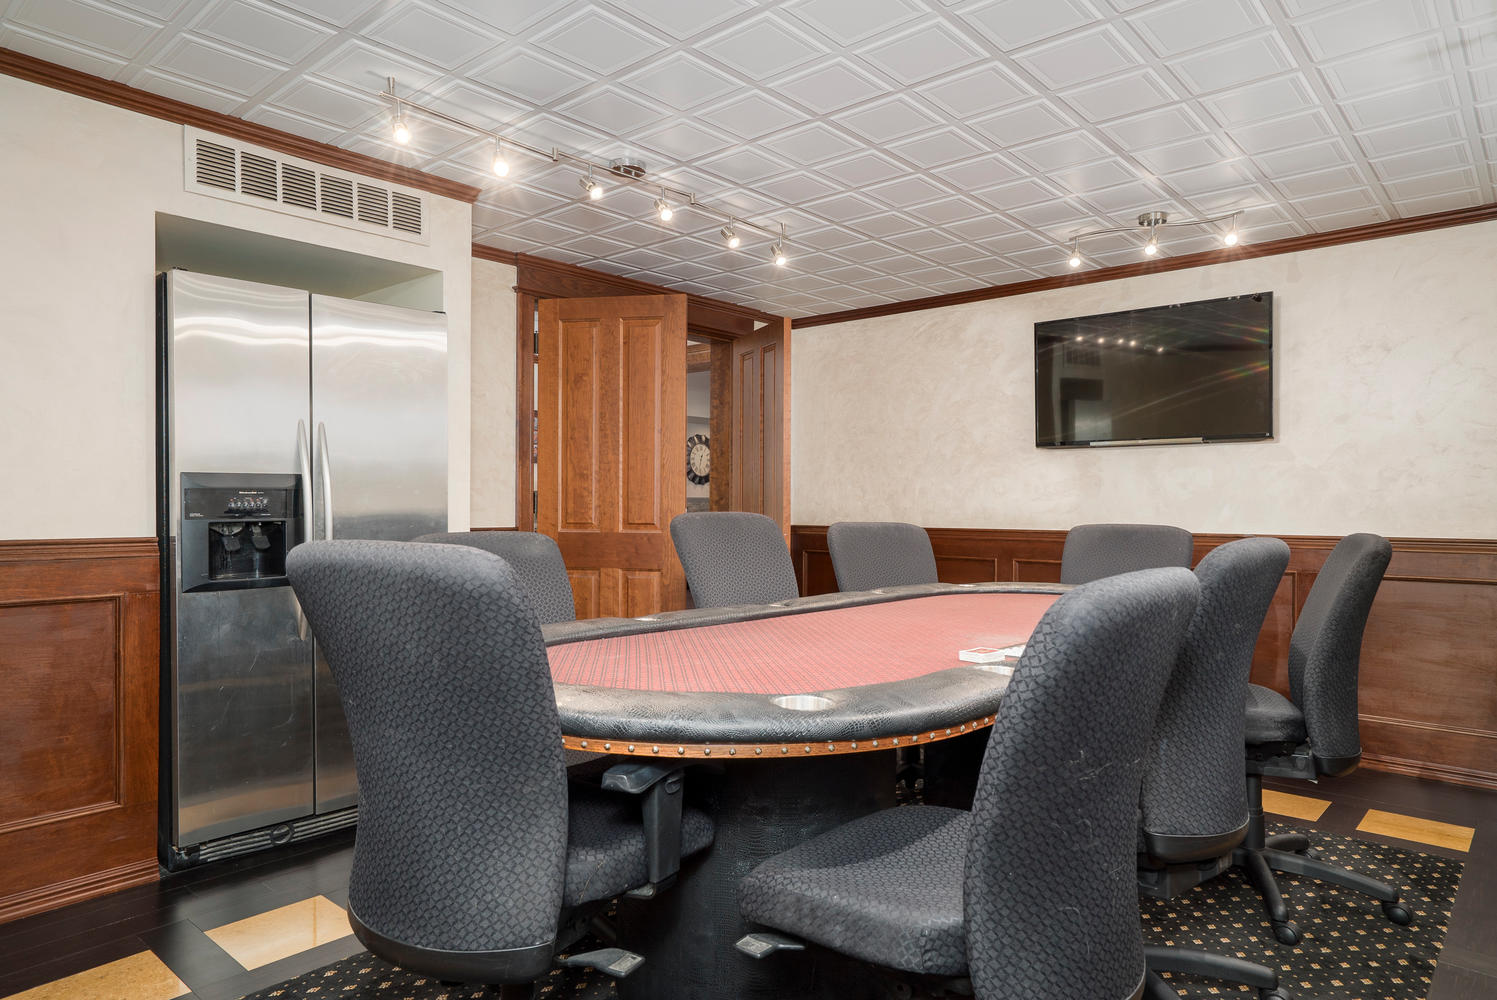 35-redbrick-orchard-park-ny-large-032-46-poker-room-1498×1000-72dpi